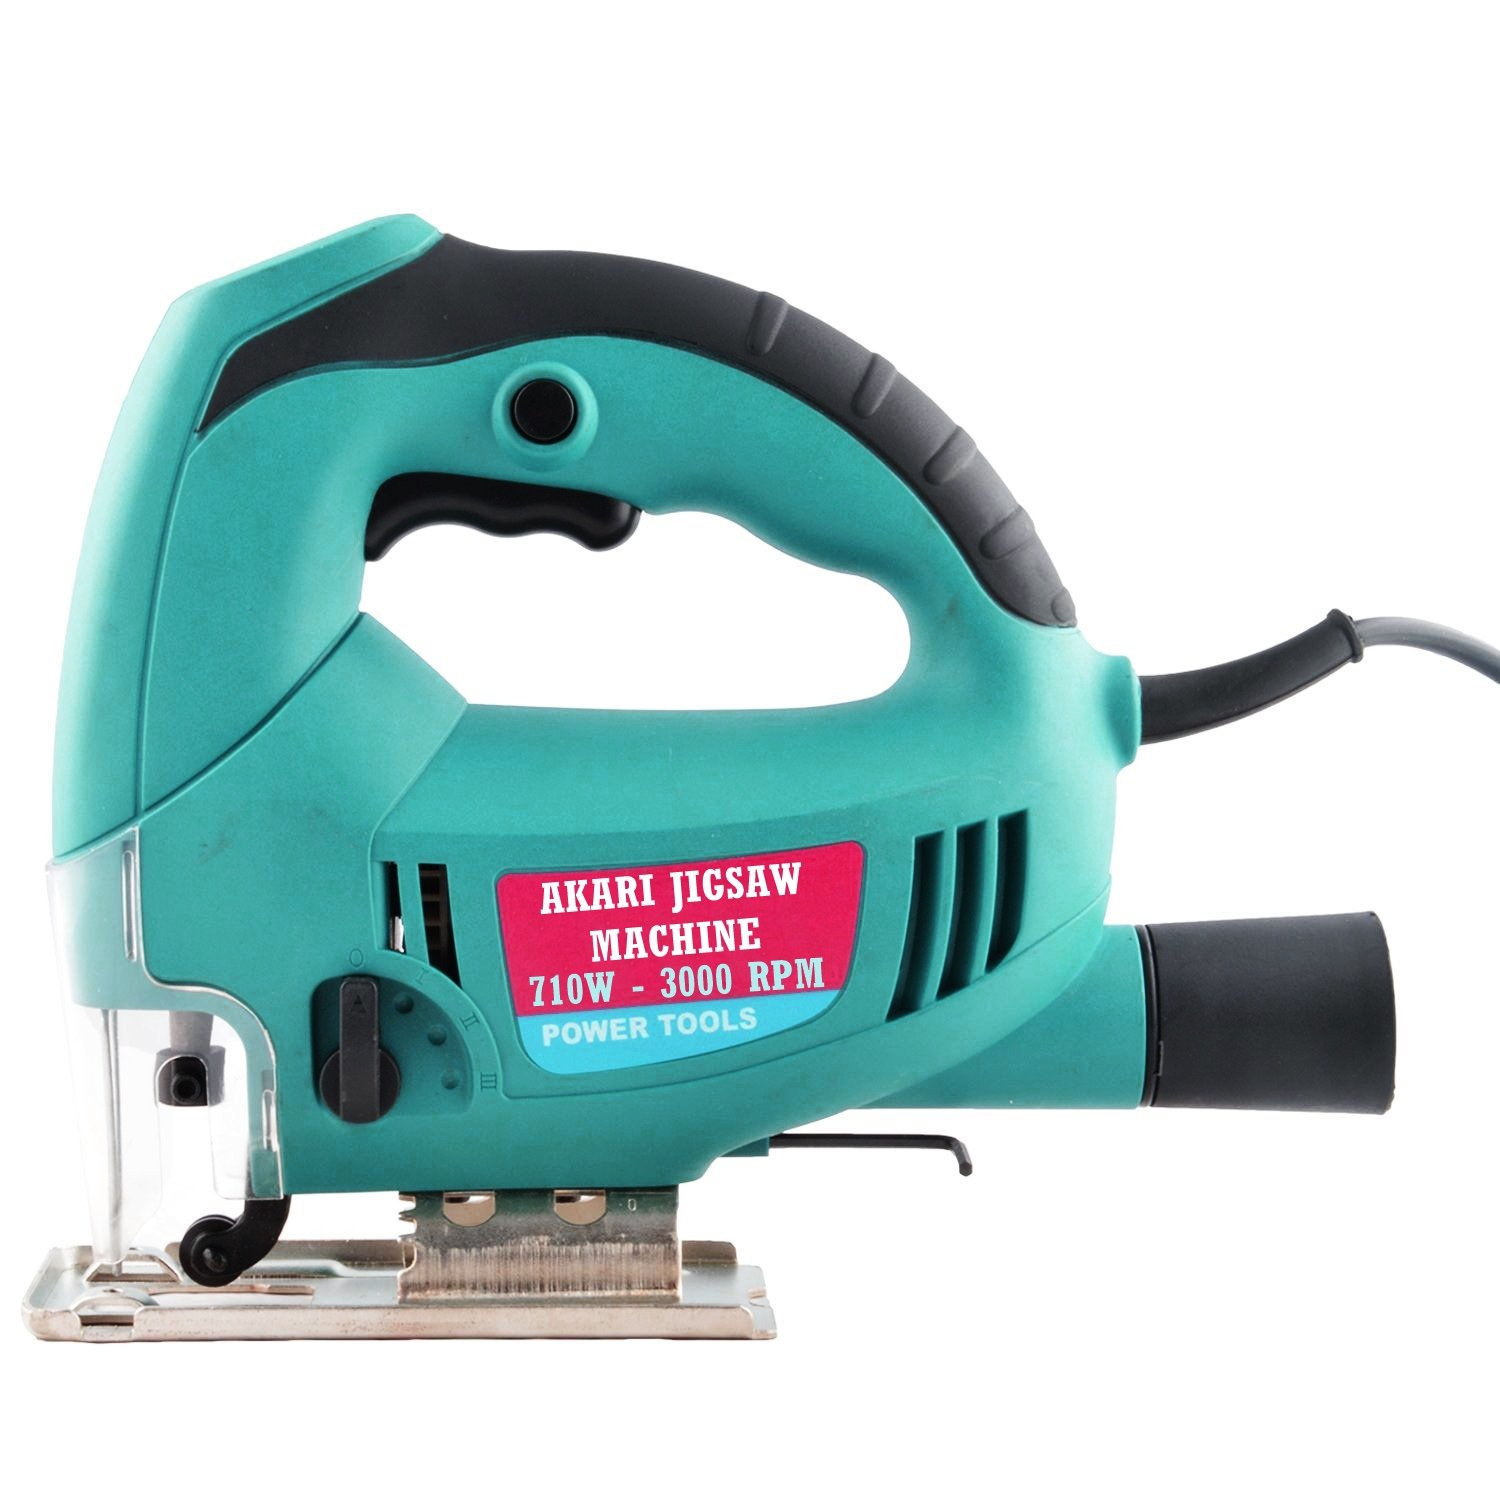 POWERTUFF, YOCA, AND FOREVER Tools and Hardware Powerful Jigsaw Machine with Variable Speed and 5 Pieces Blades for Metal, Aluminium and Wood Cutting (Green)